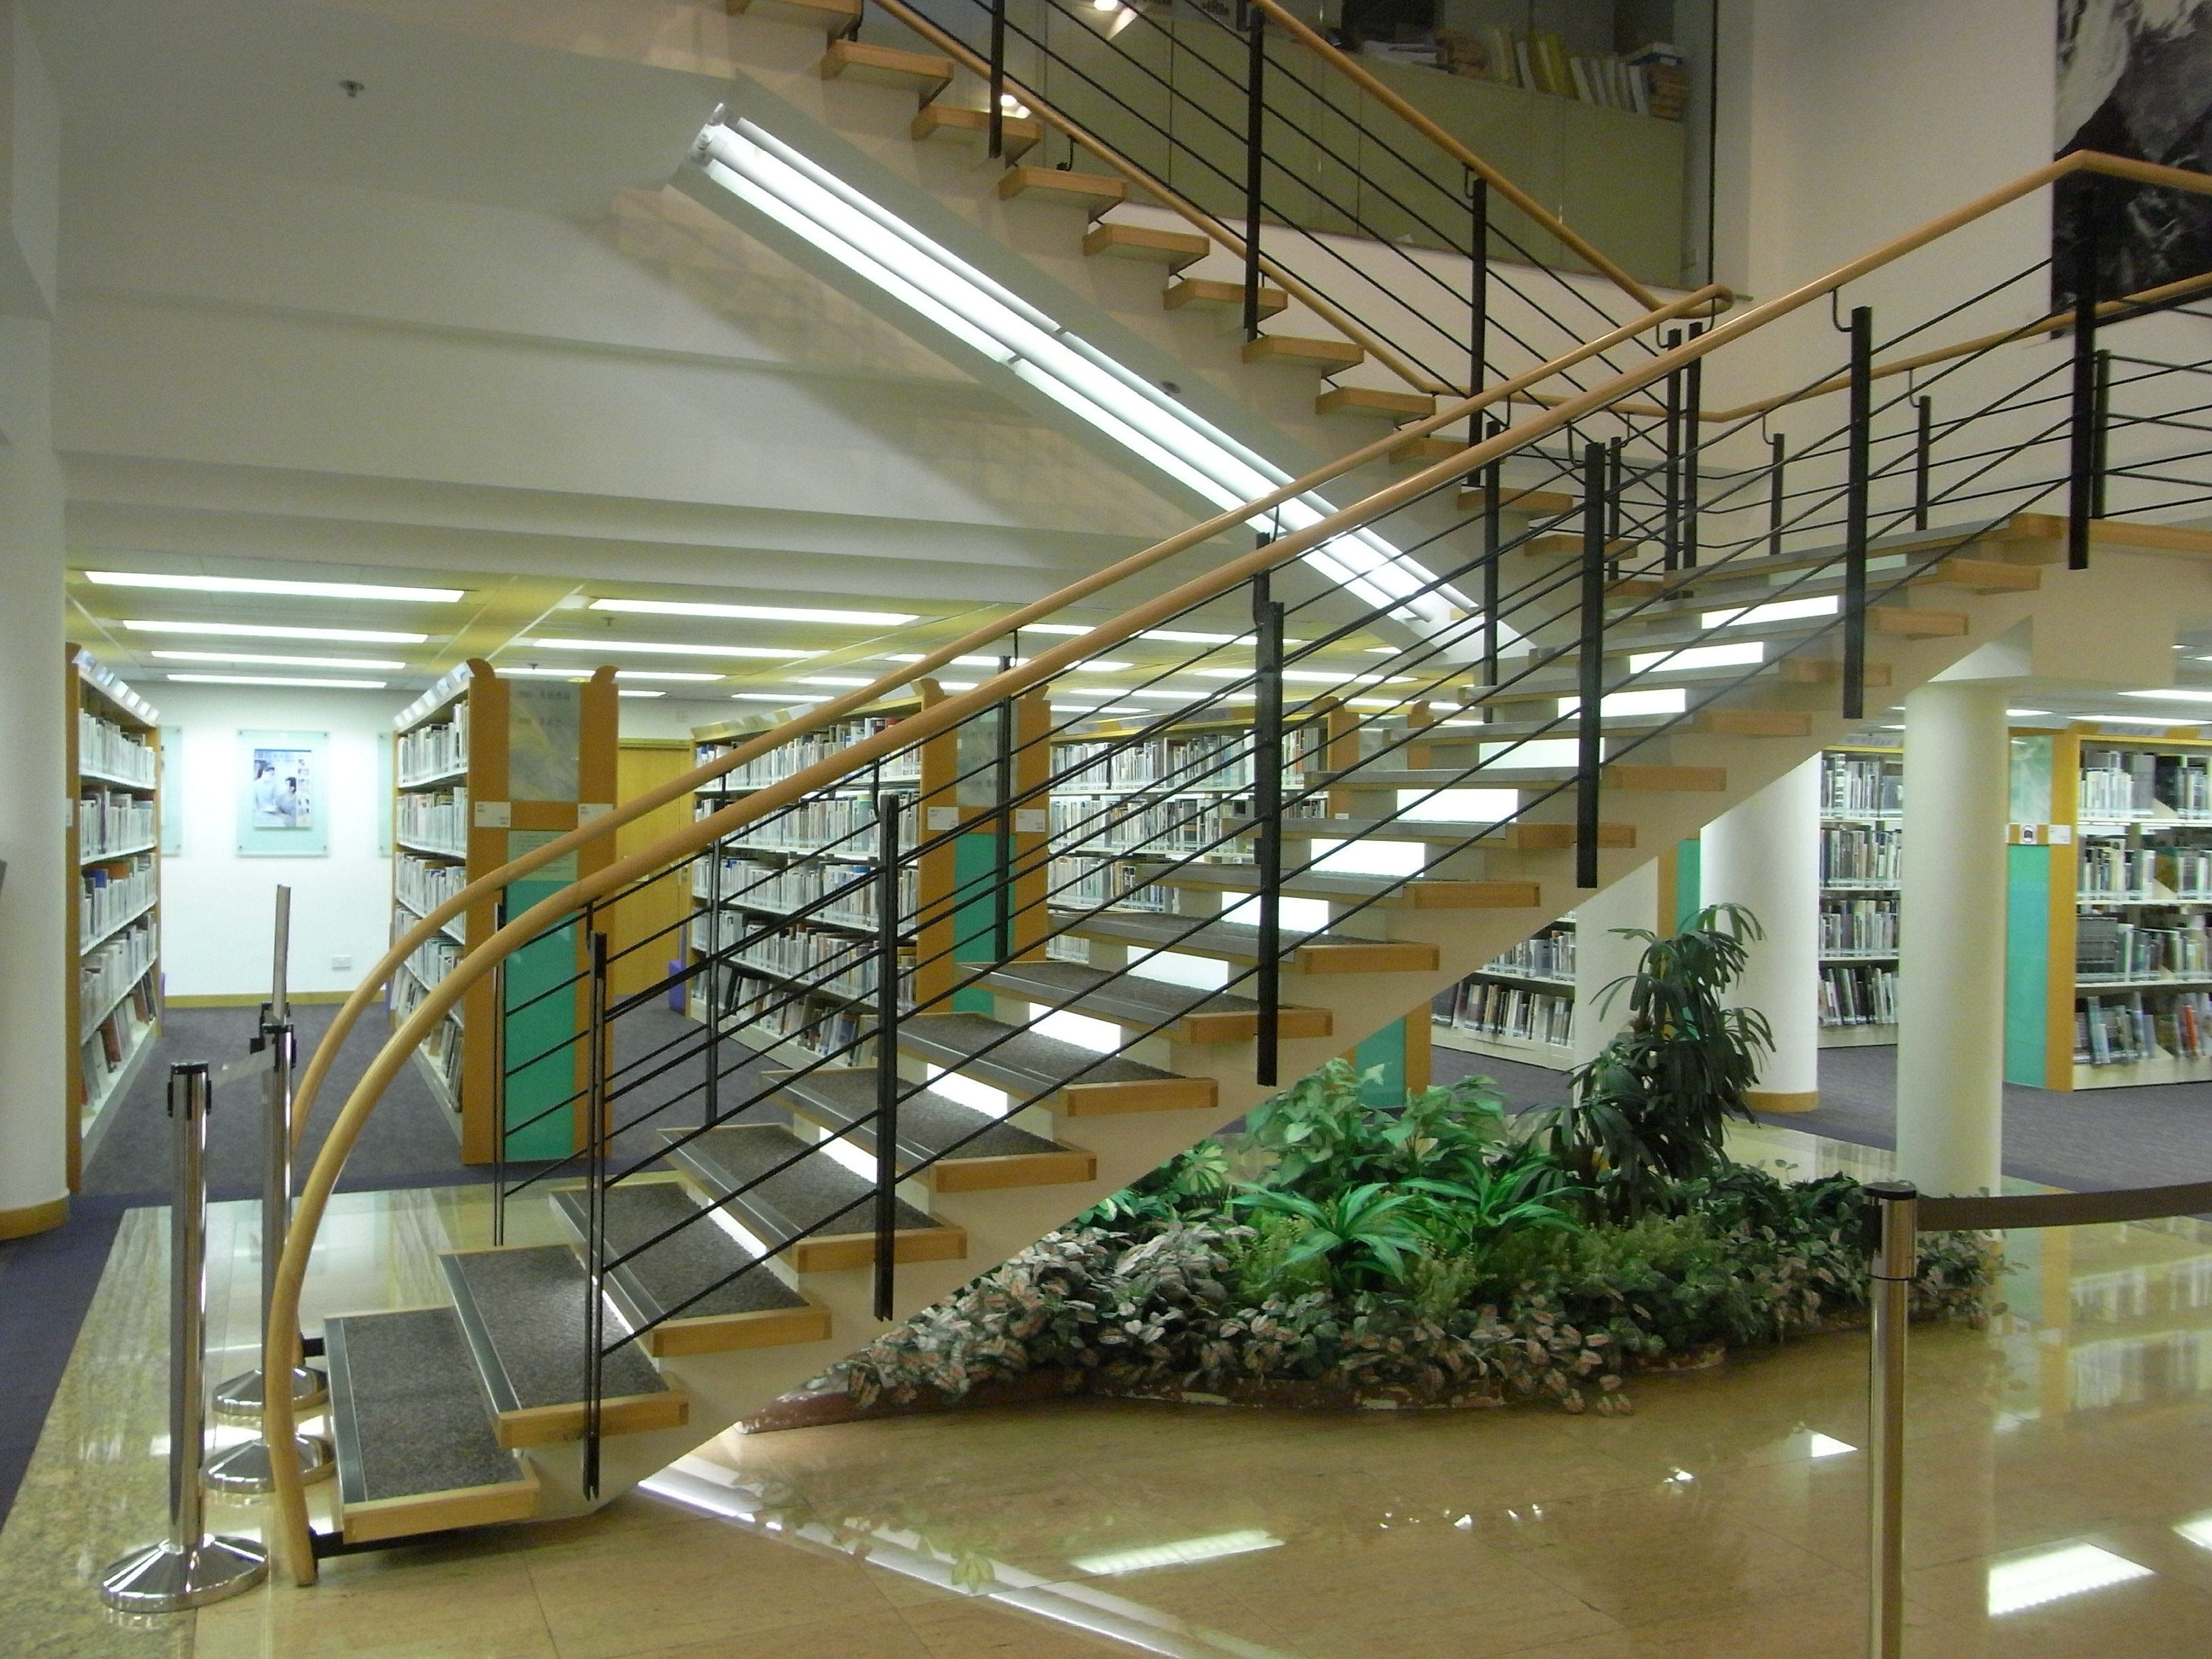 File:HK 香港中央圖書館 Central Library 10th Floor Interior Steps Stairs.JPG